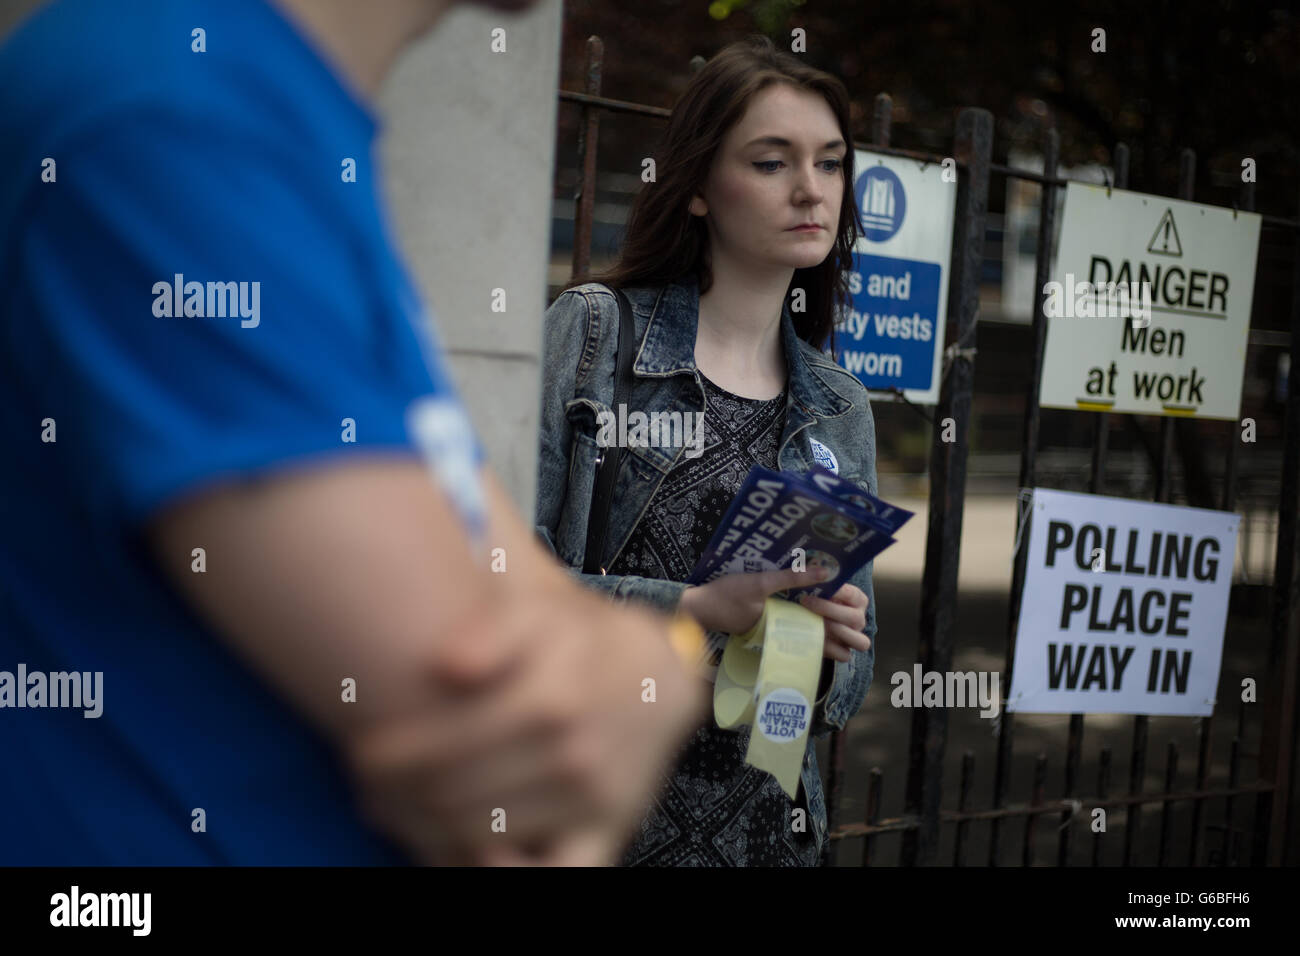 Glasgow, UK. 23rd June, 2016. 'Remain' campaigners, Patrick Bourke (foreground) and Emma Russell, stand - Stock Image